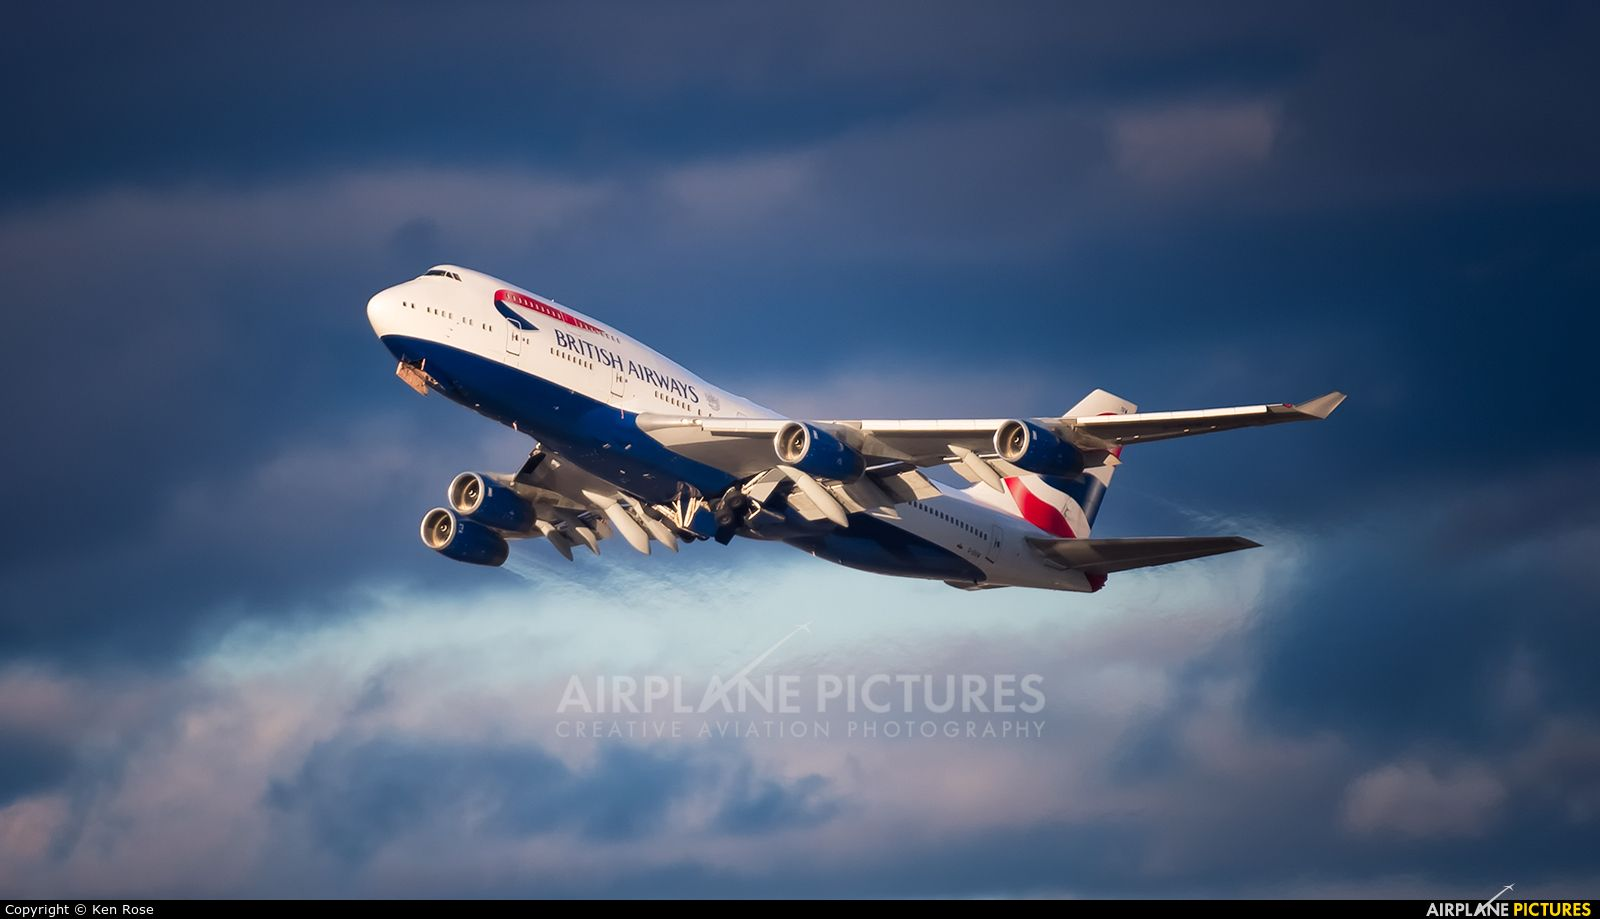 Pin by Shane Wilson on airplanes Boeing 747 400, British